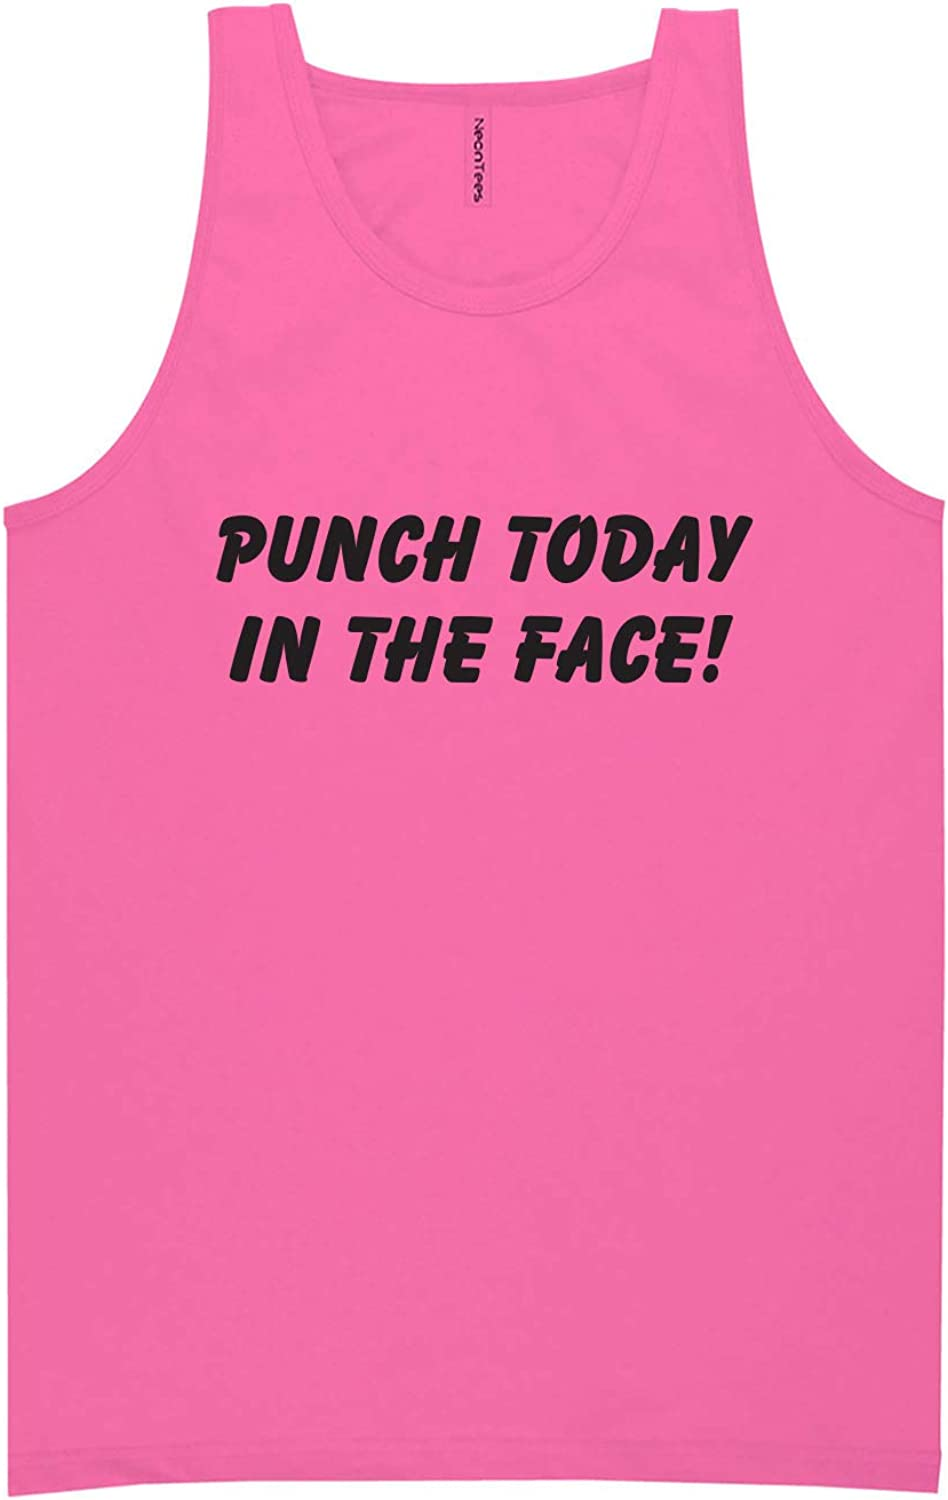 Punch Today in The Face! Neon Tank Top